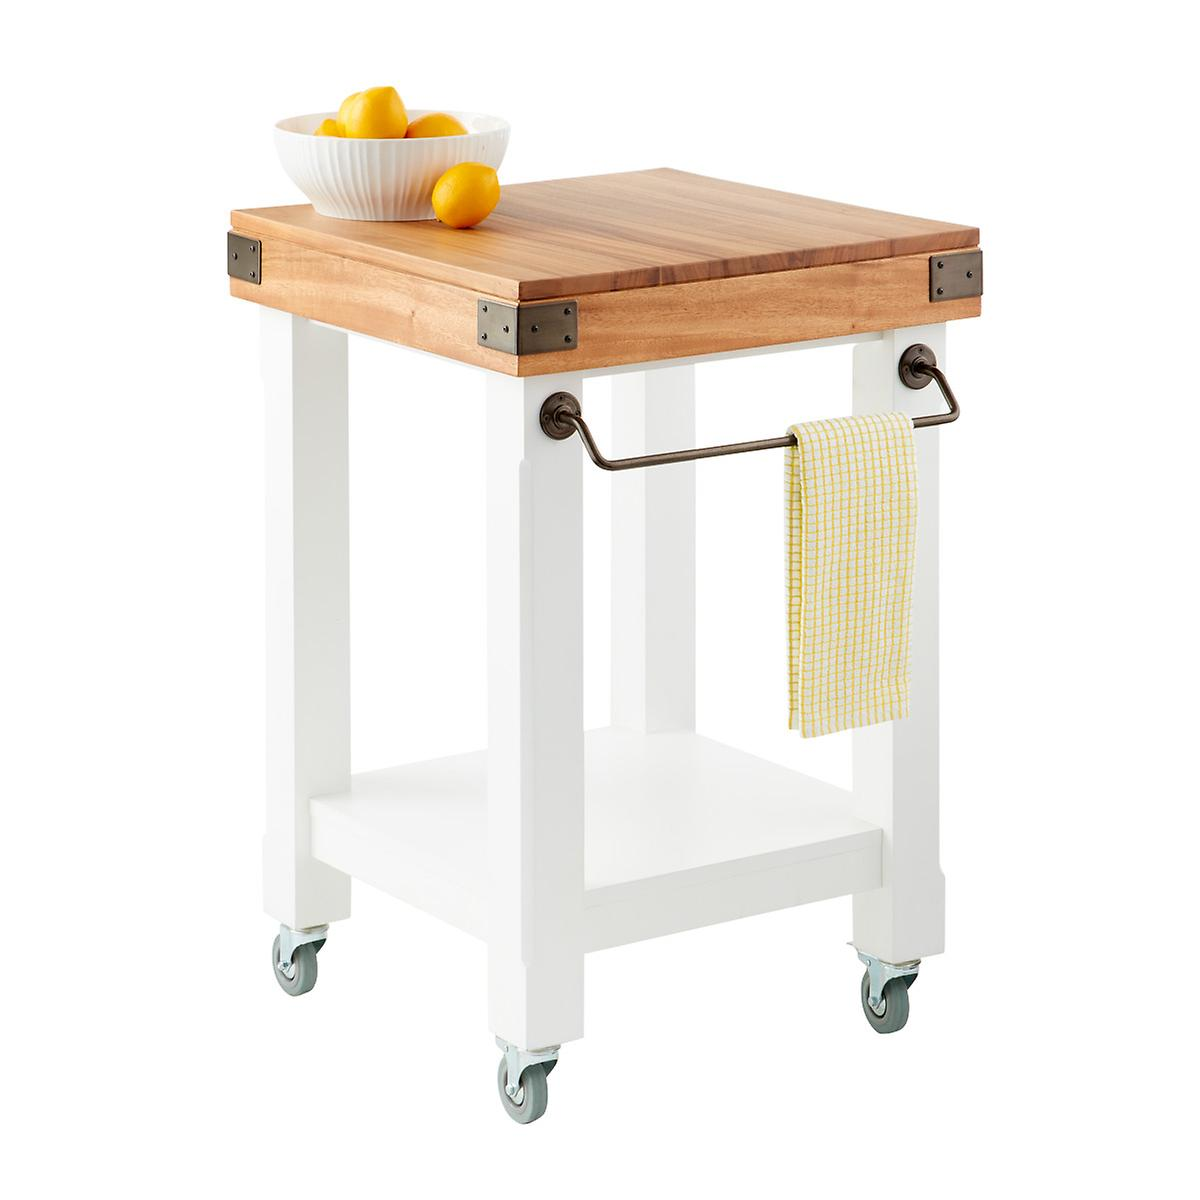 butcher block rolling kitchen island cart the container. Black Bedroom Furniture Sets. Home Design Ideas